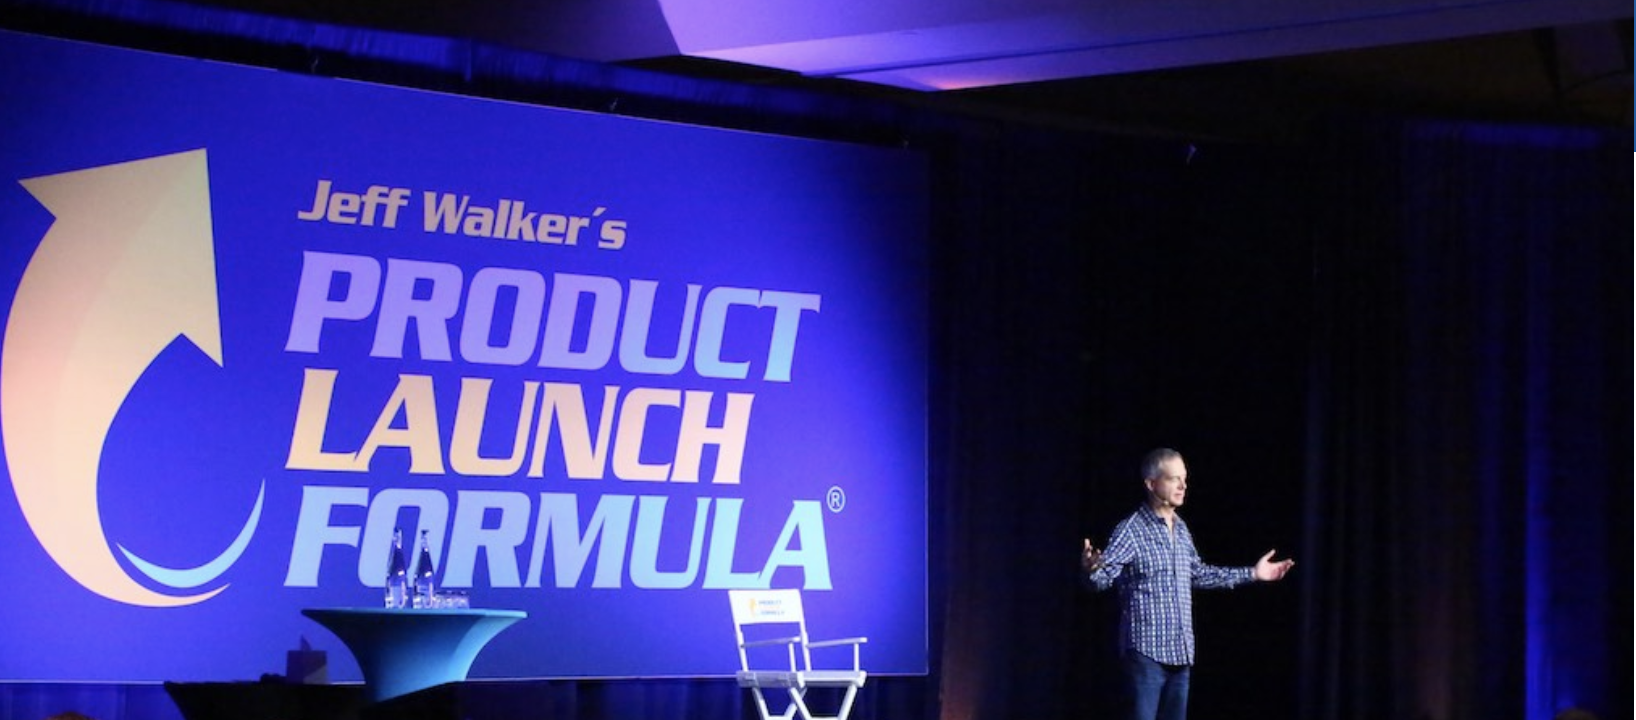 What is the product launch formula?